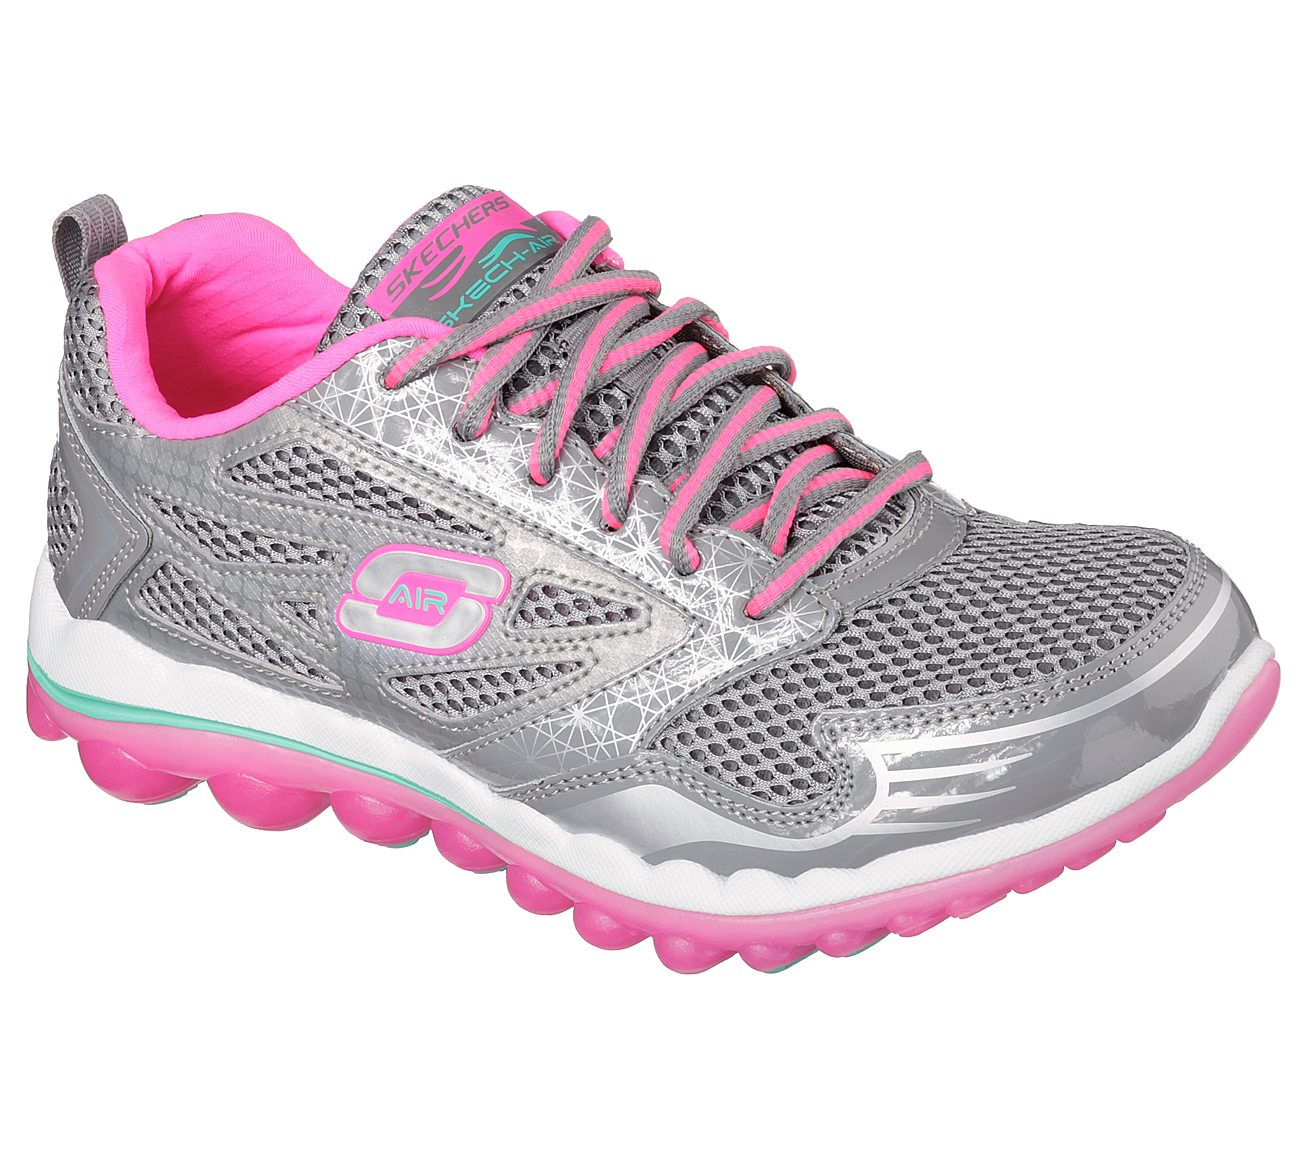 fcad4dfdd339 Buy SKECHERS Skech-Air 2.0 - Clear Day Skech-Air Shoes only  80.00